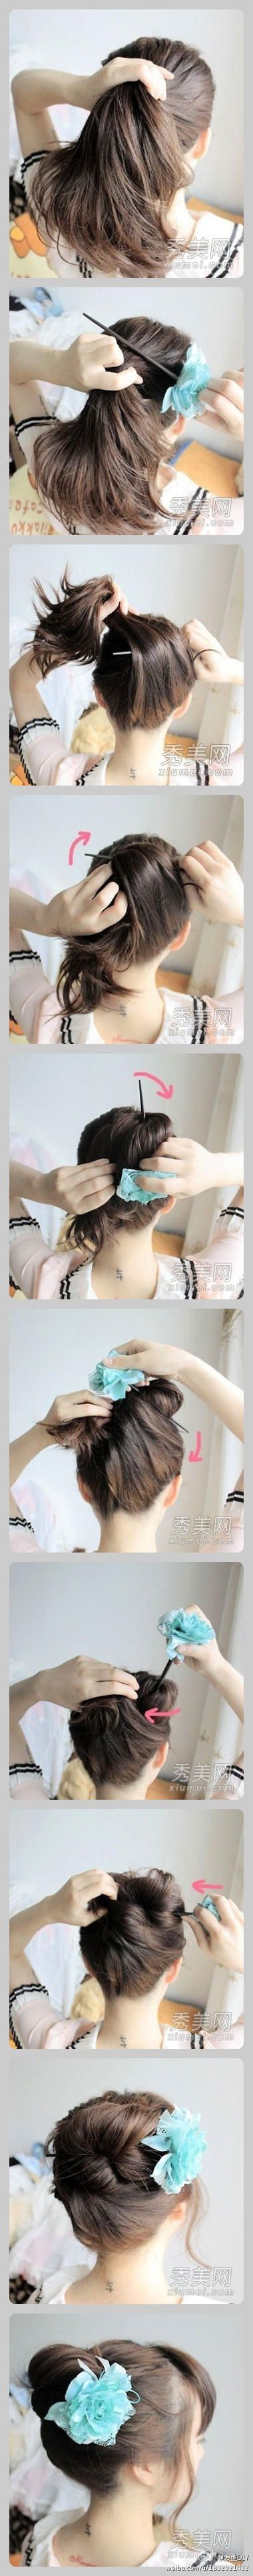 Cute hair tutorial. I run a blog with DIY&tutorials about everything: Hair, nail, make-up, clothes, baking, decorations and much more! My blog adress is: tuwws.blogspot.se